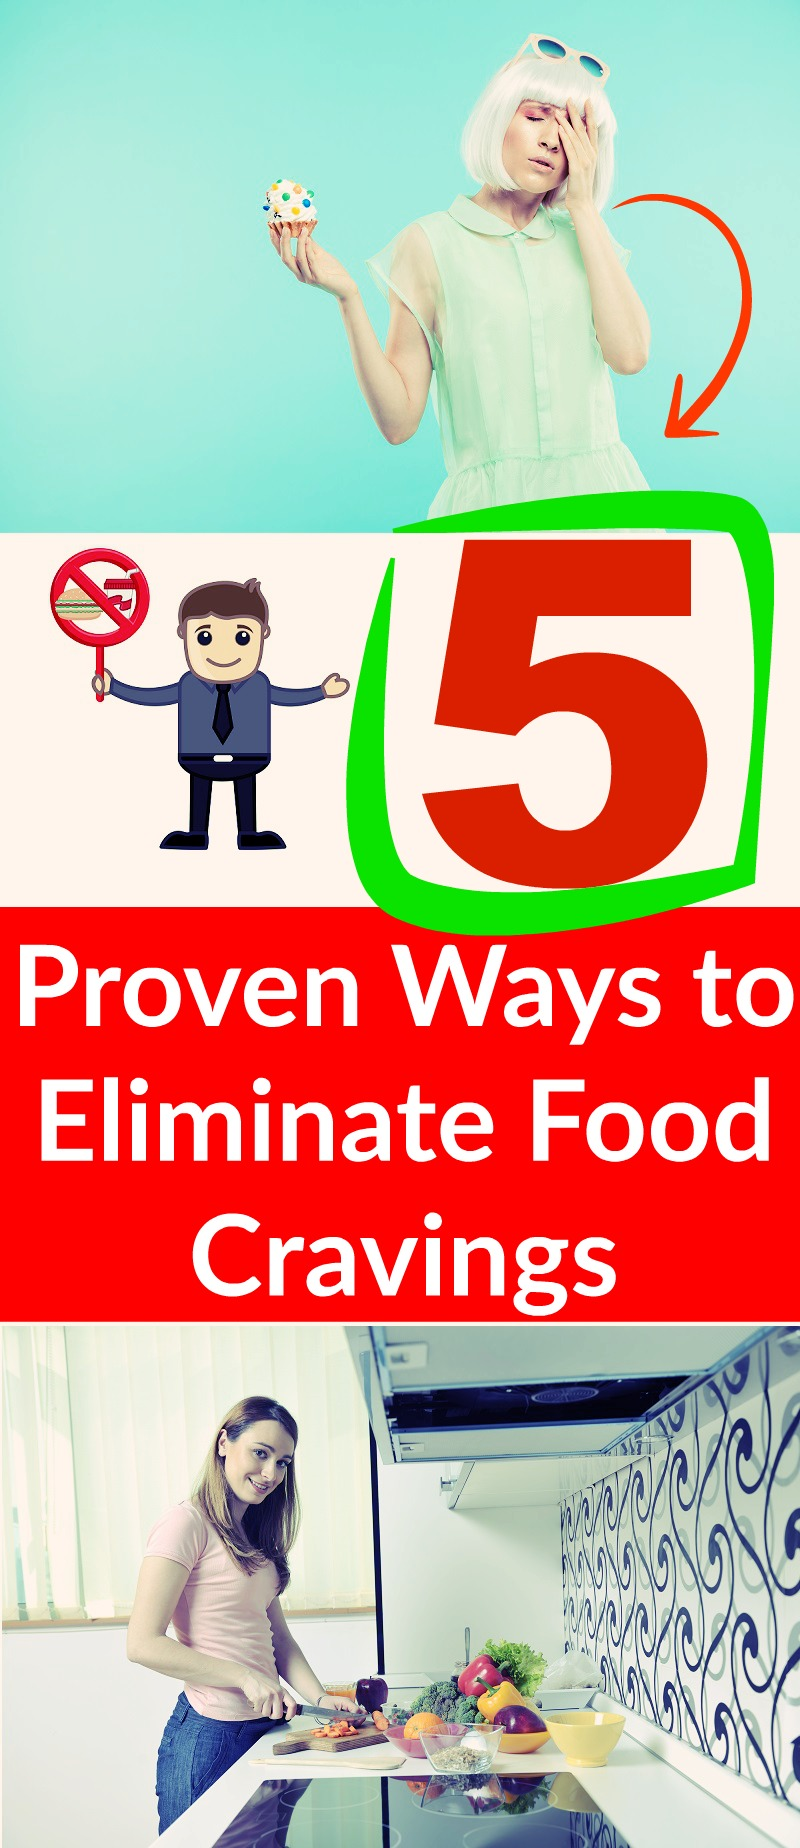 Eliminate Food Cravings